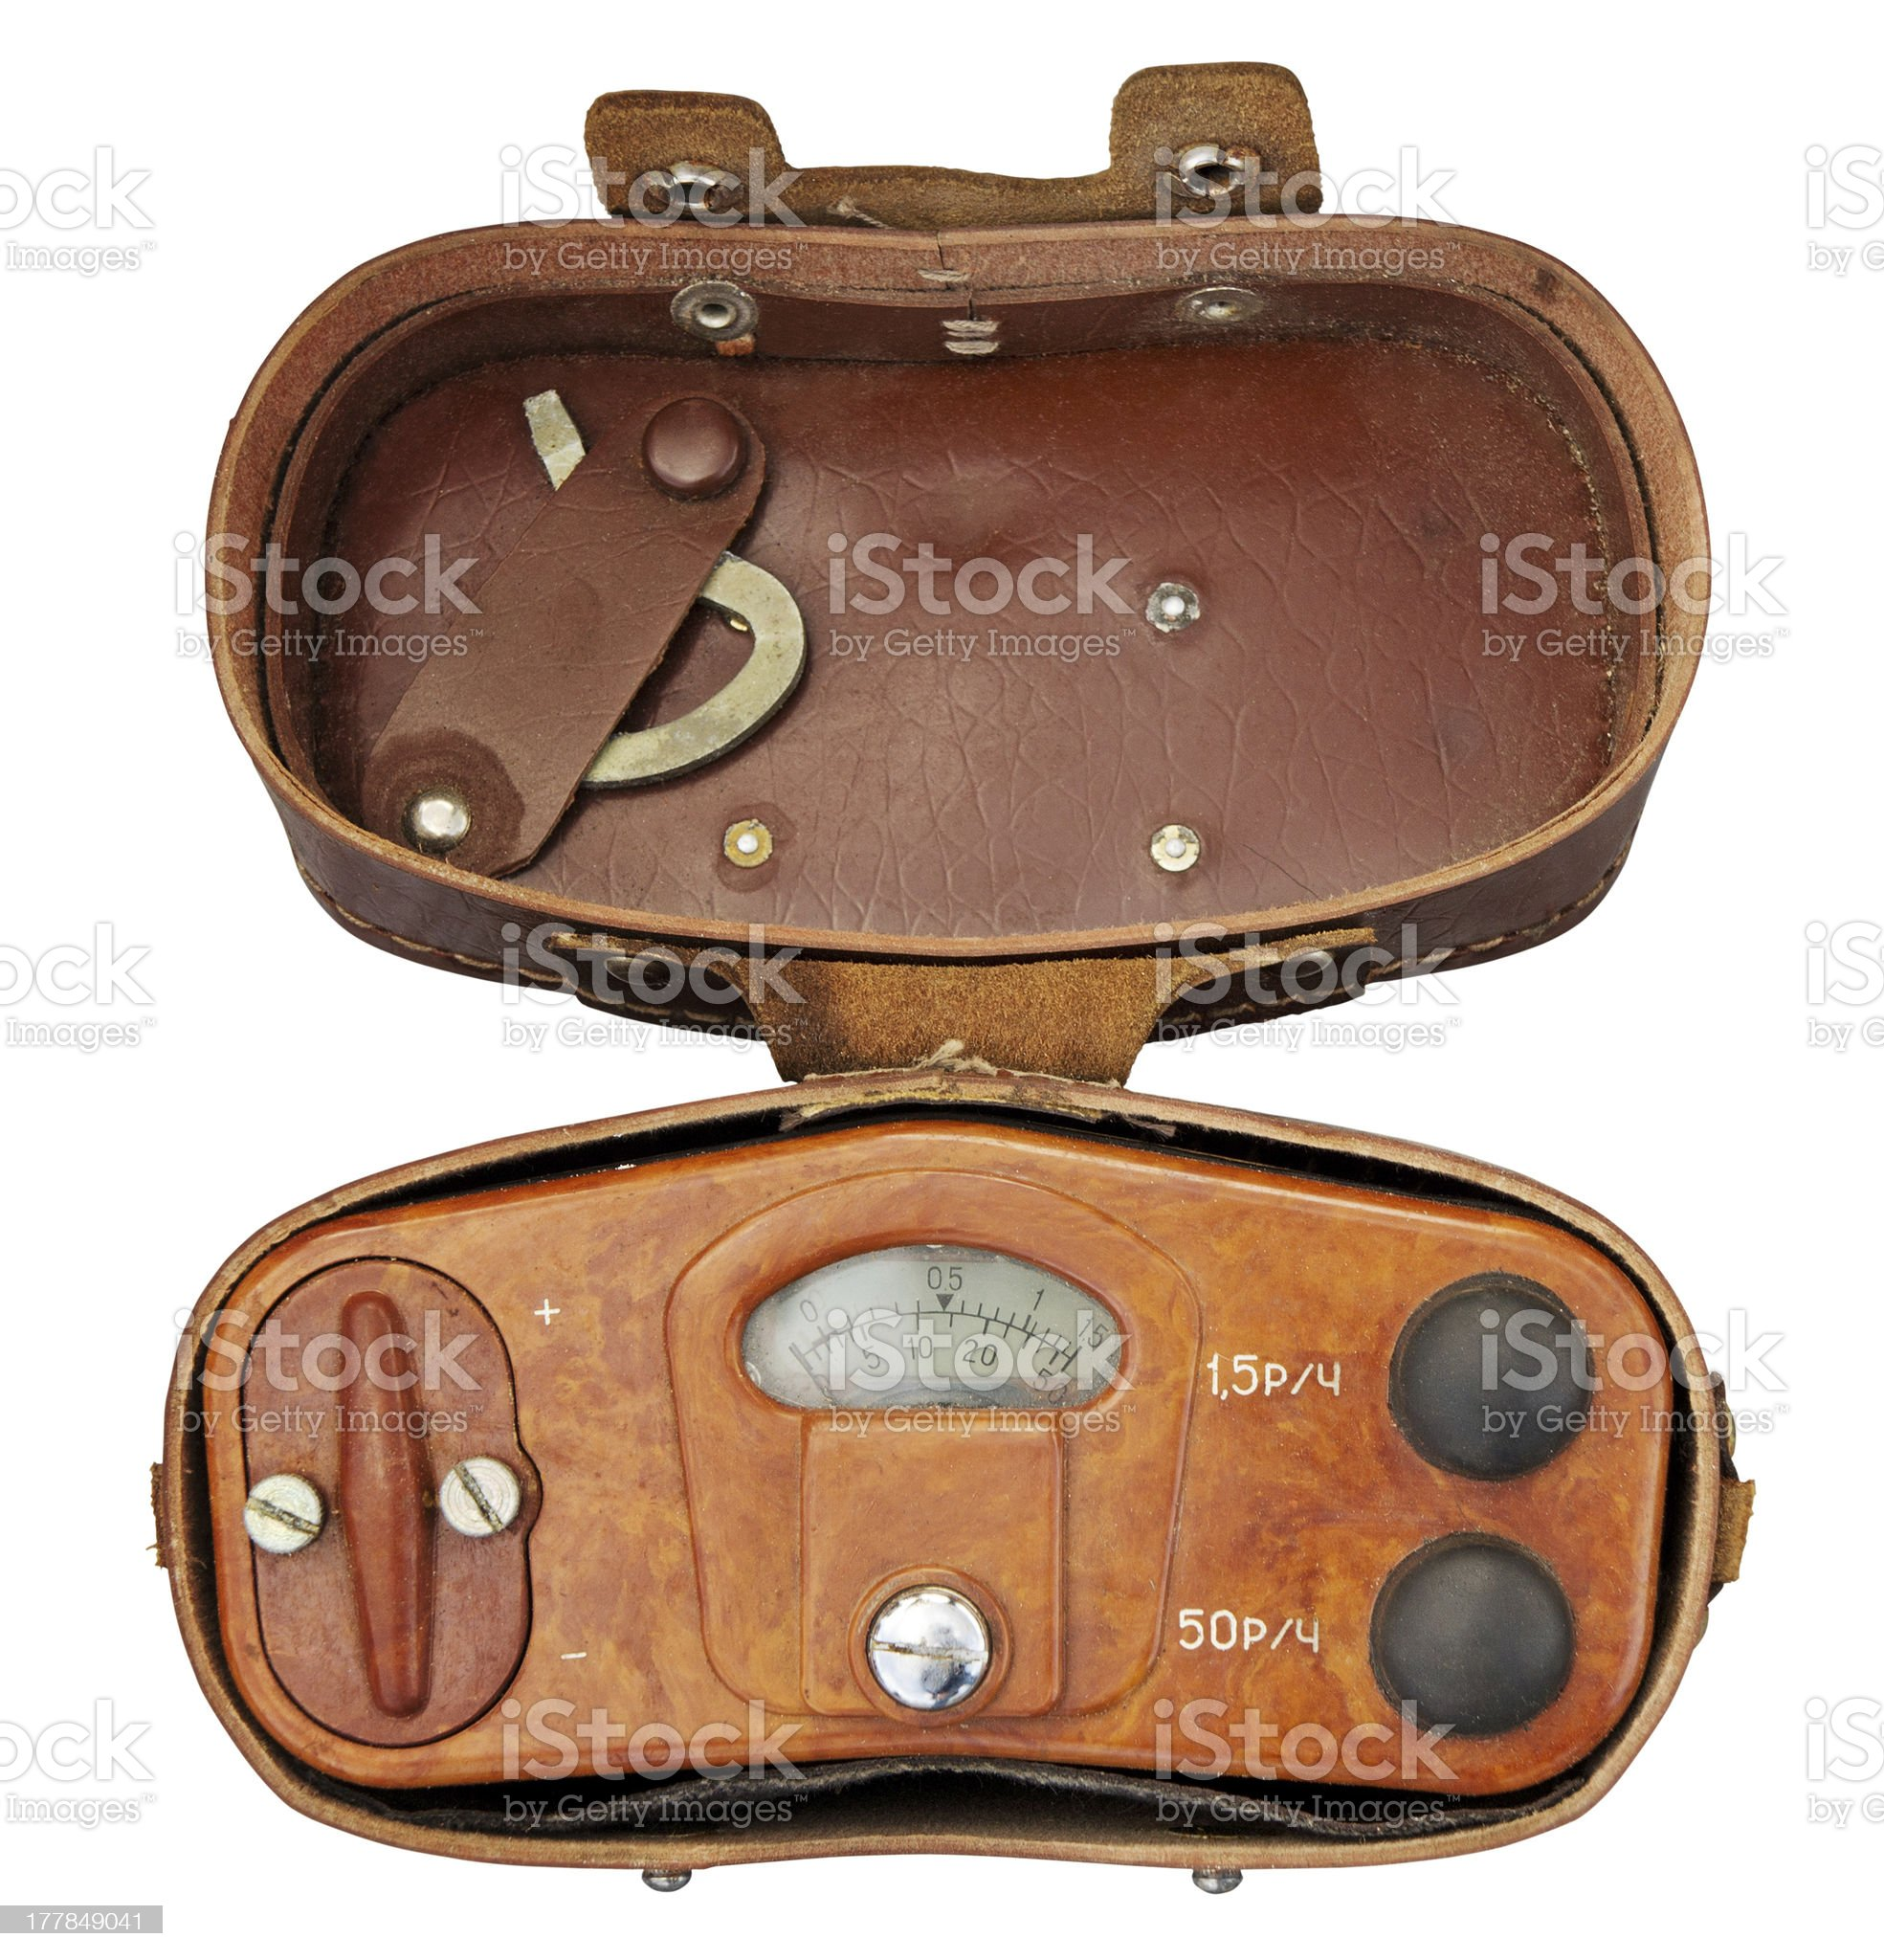 Old military radiation meter royalty-free stock photo